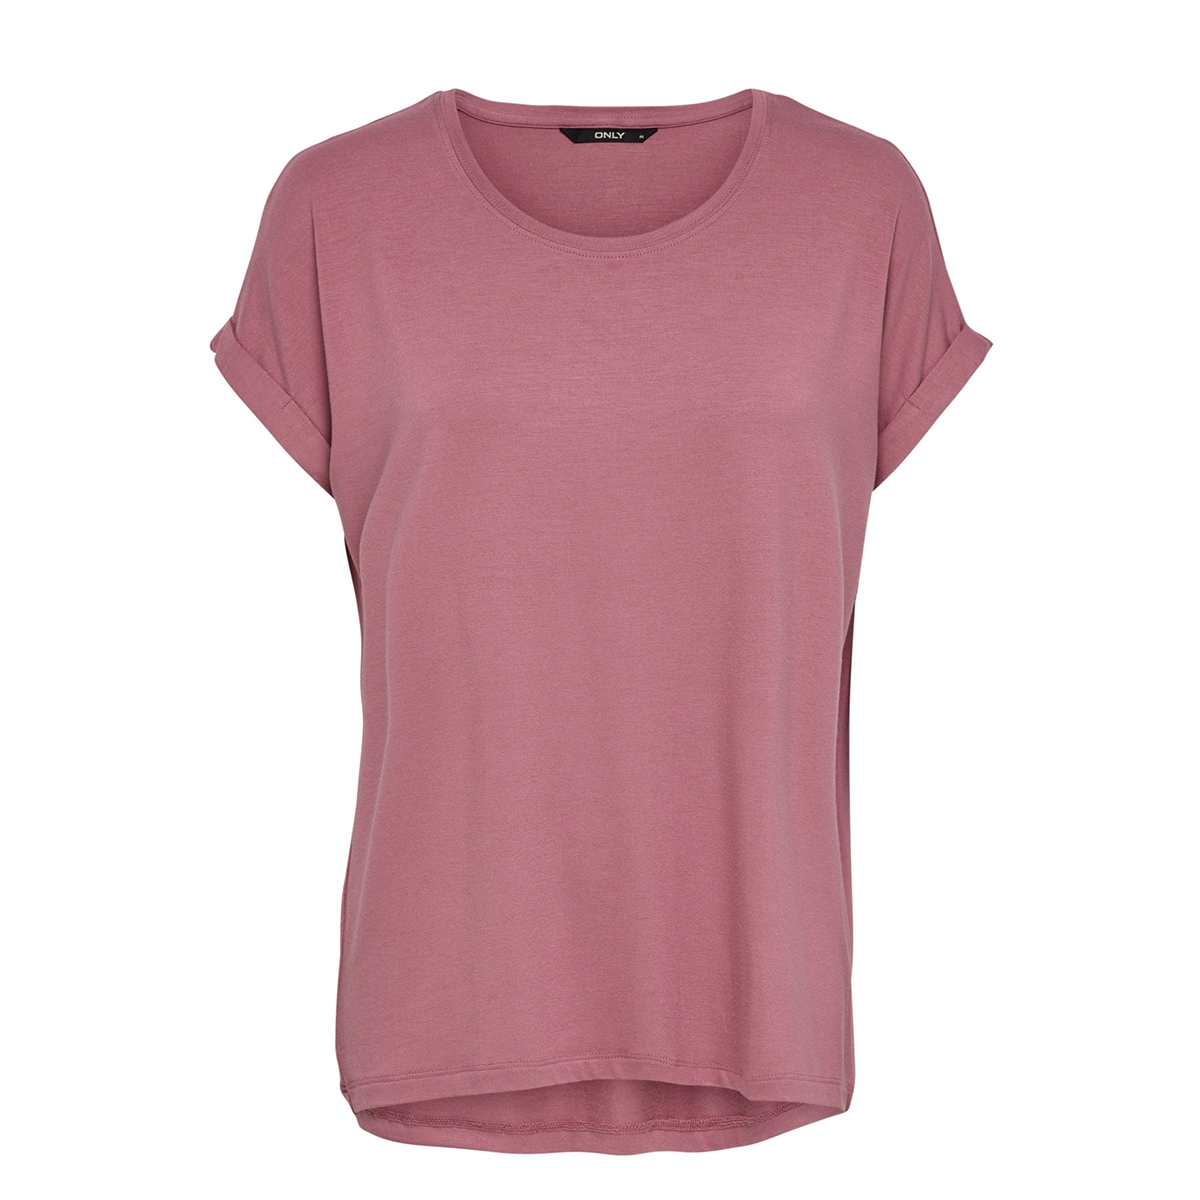 onlmoster s/s o-neck top noos jrs 15106662 only t-shirt mesa rose